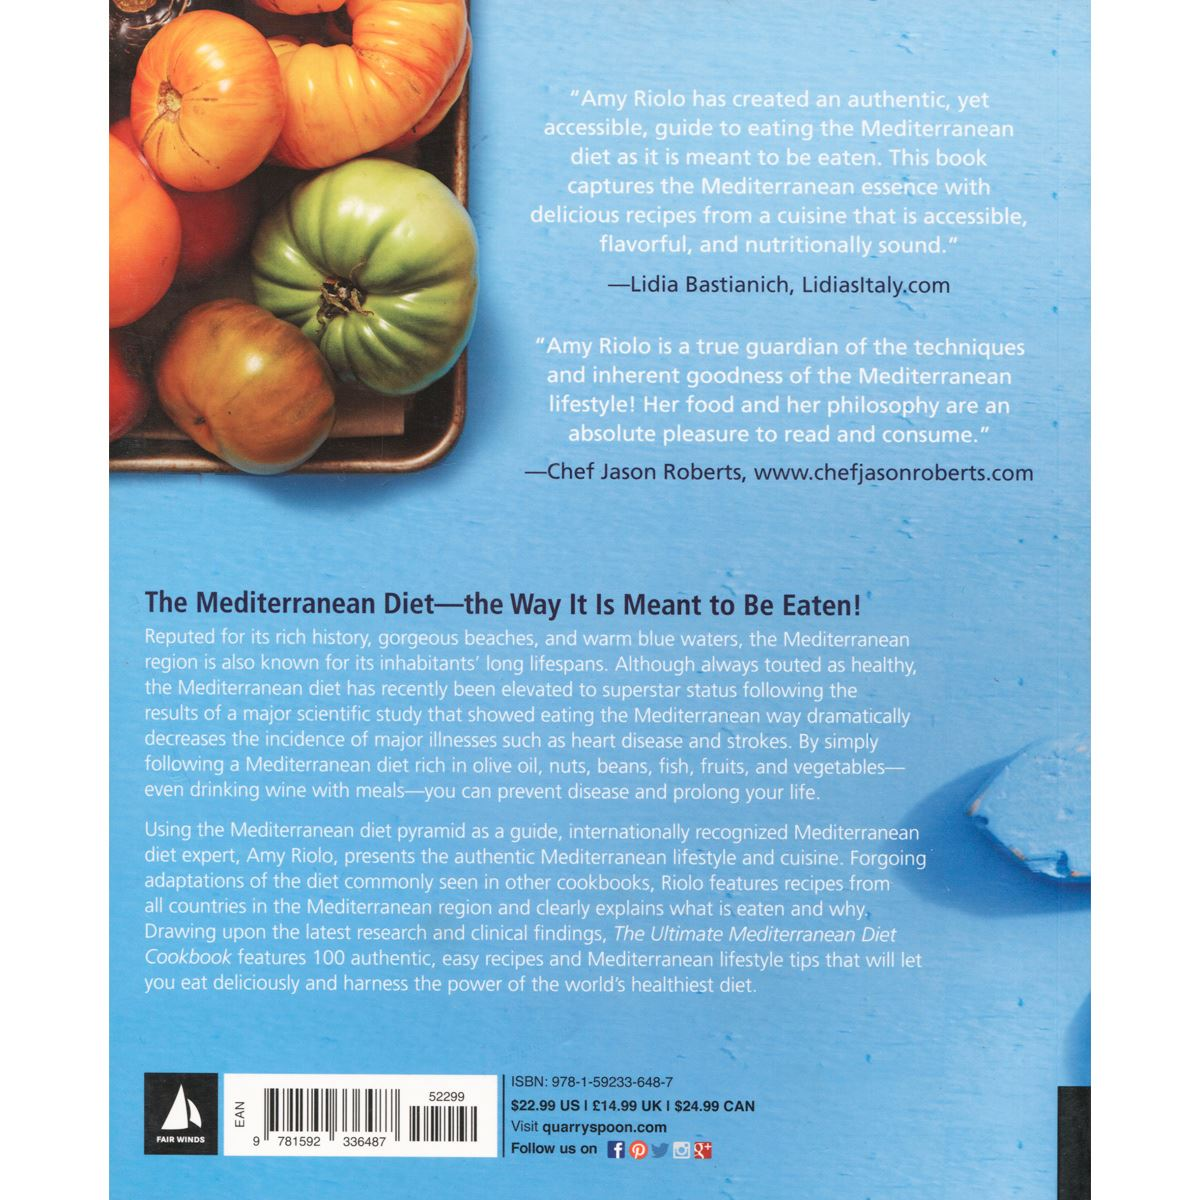 The ultimate mediterranean diet cookbook Libro - Sanborns